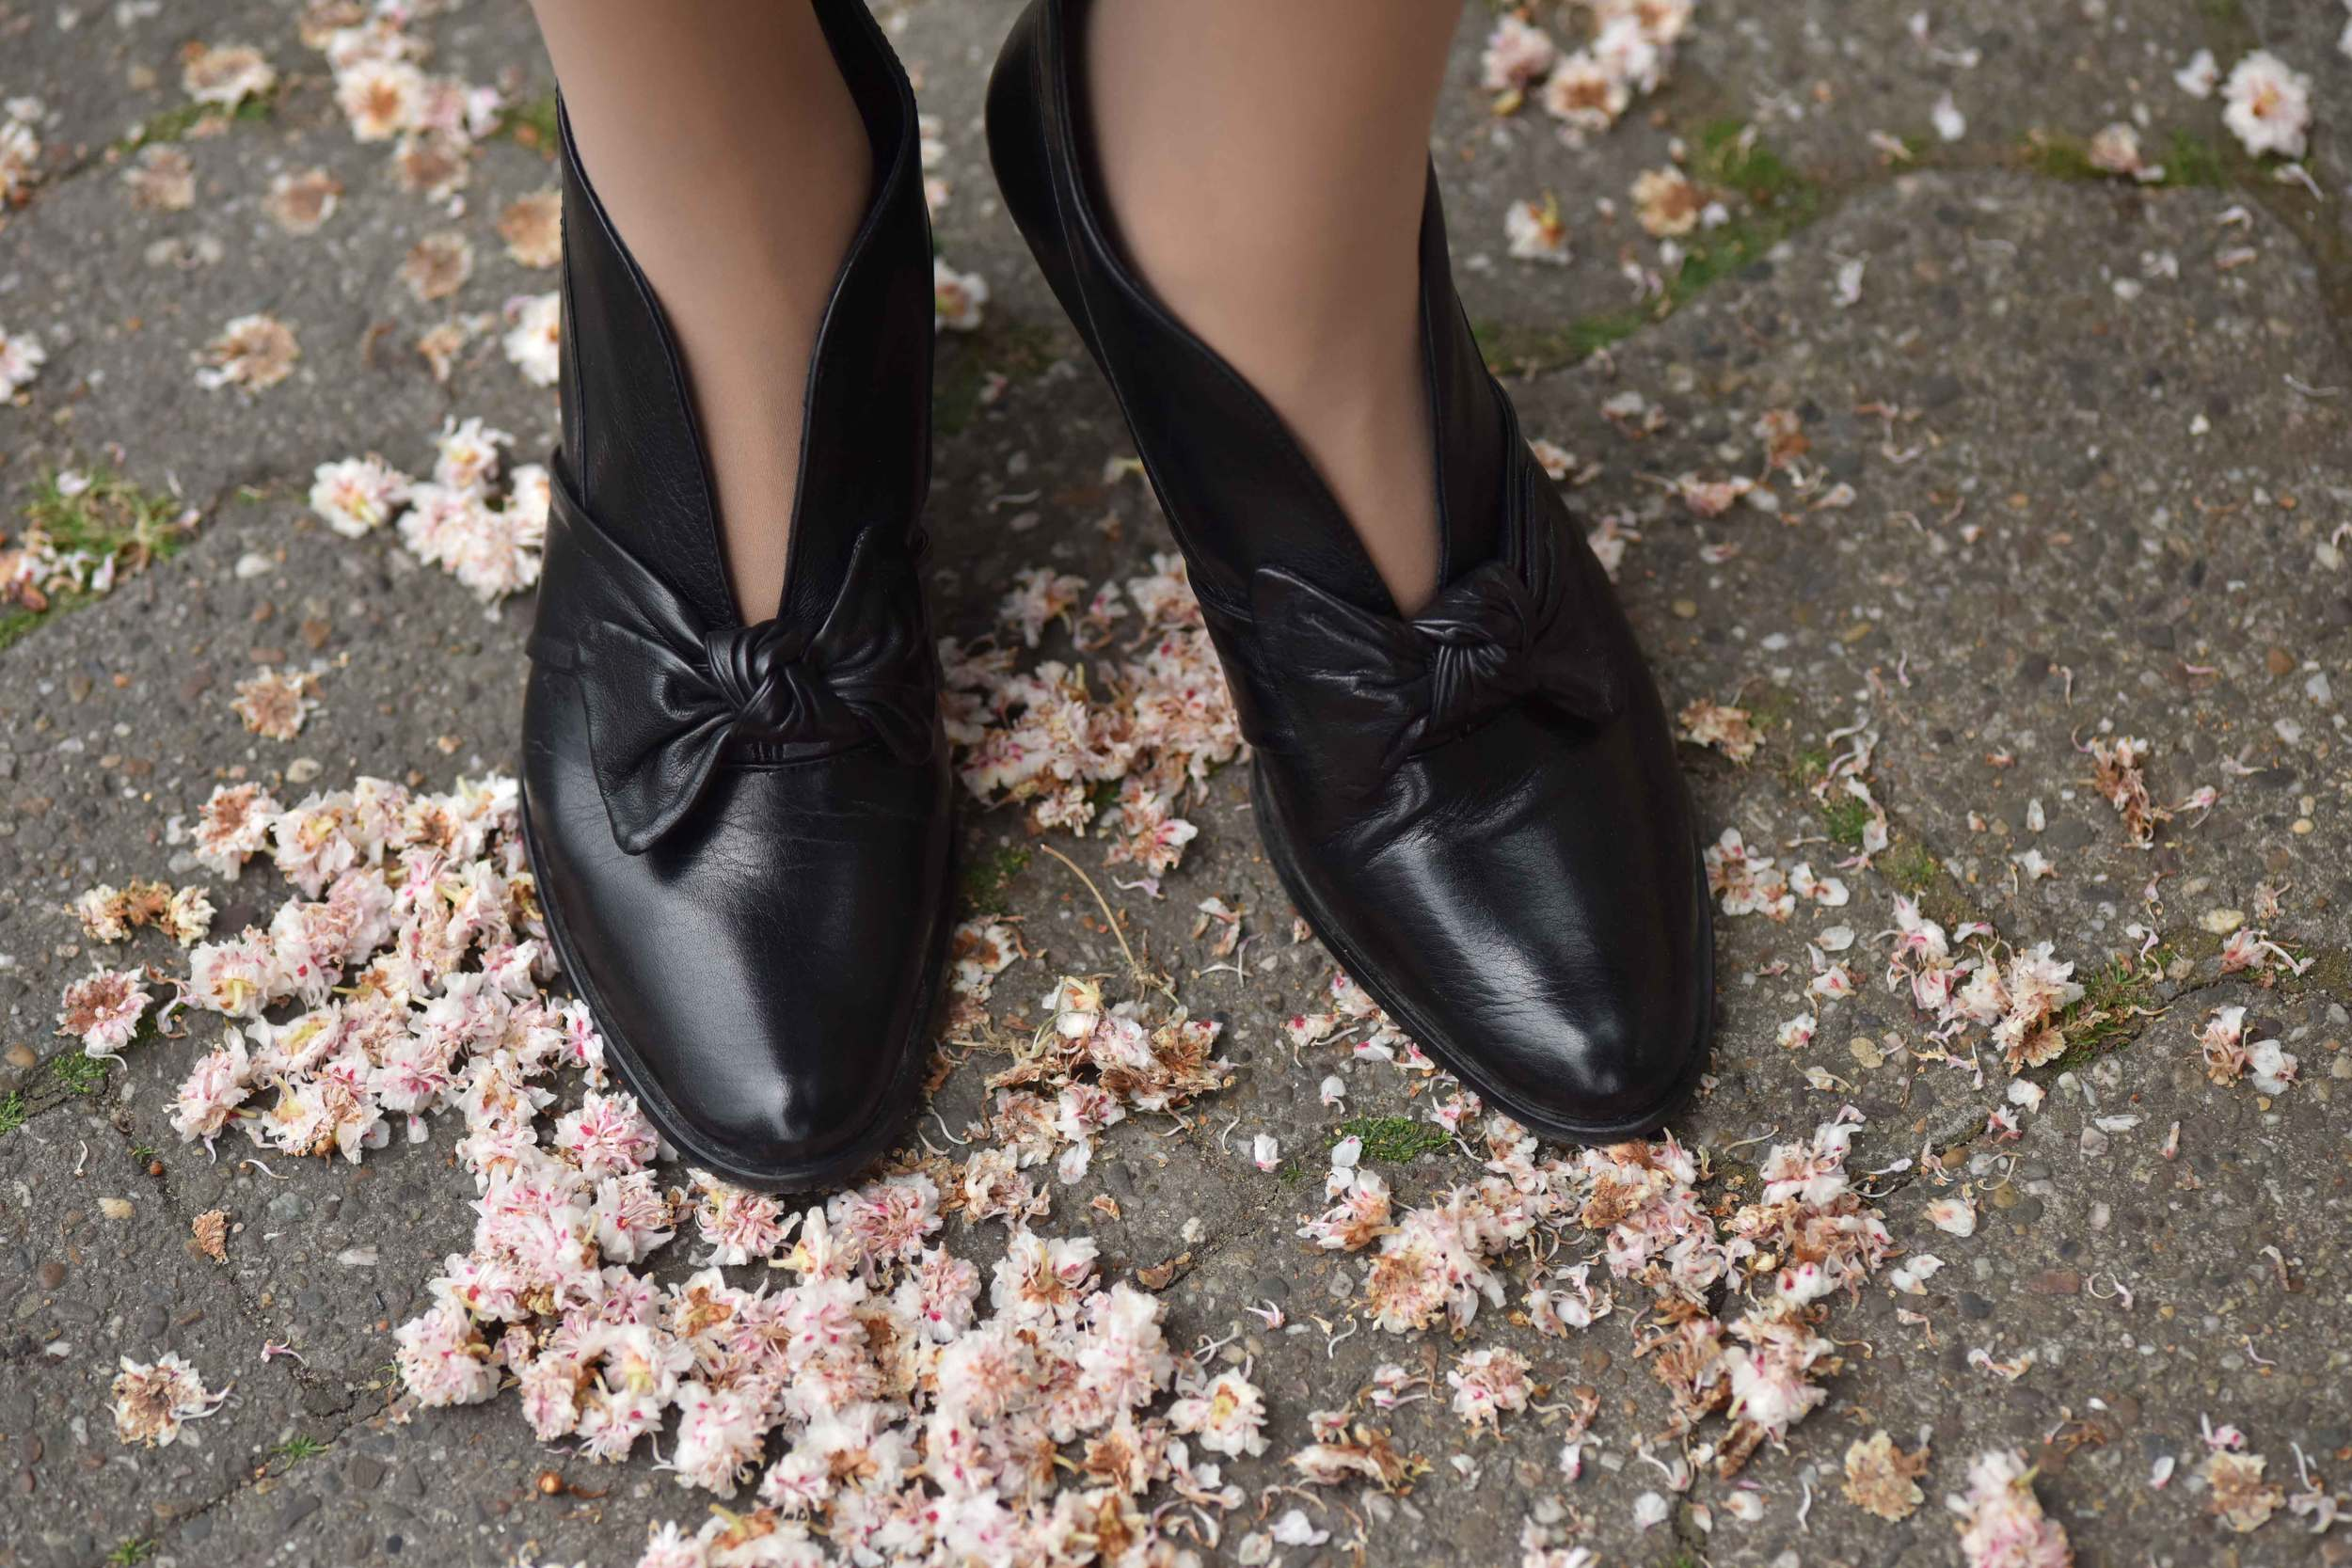 Shoes from Sweden. Image©sourcingstyle.com, Photo: Nicola Nolting.